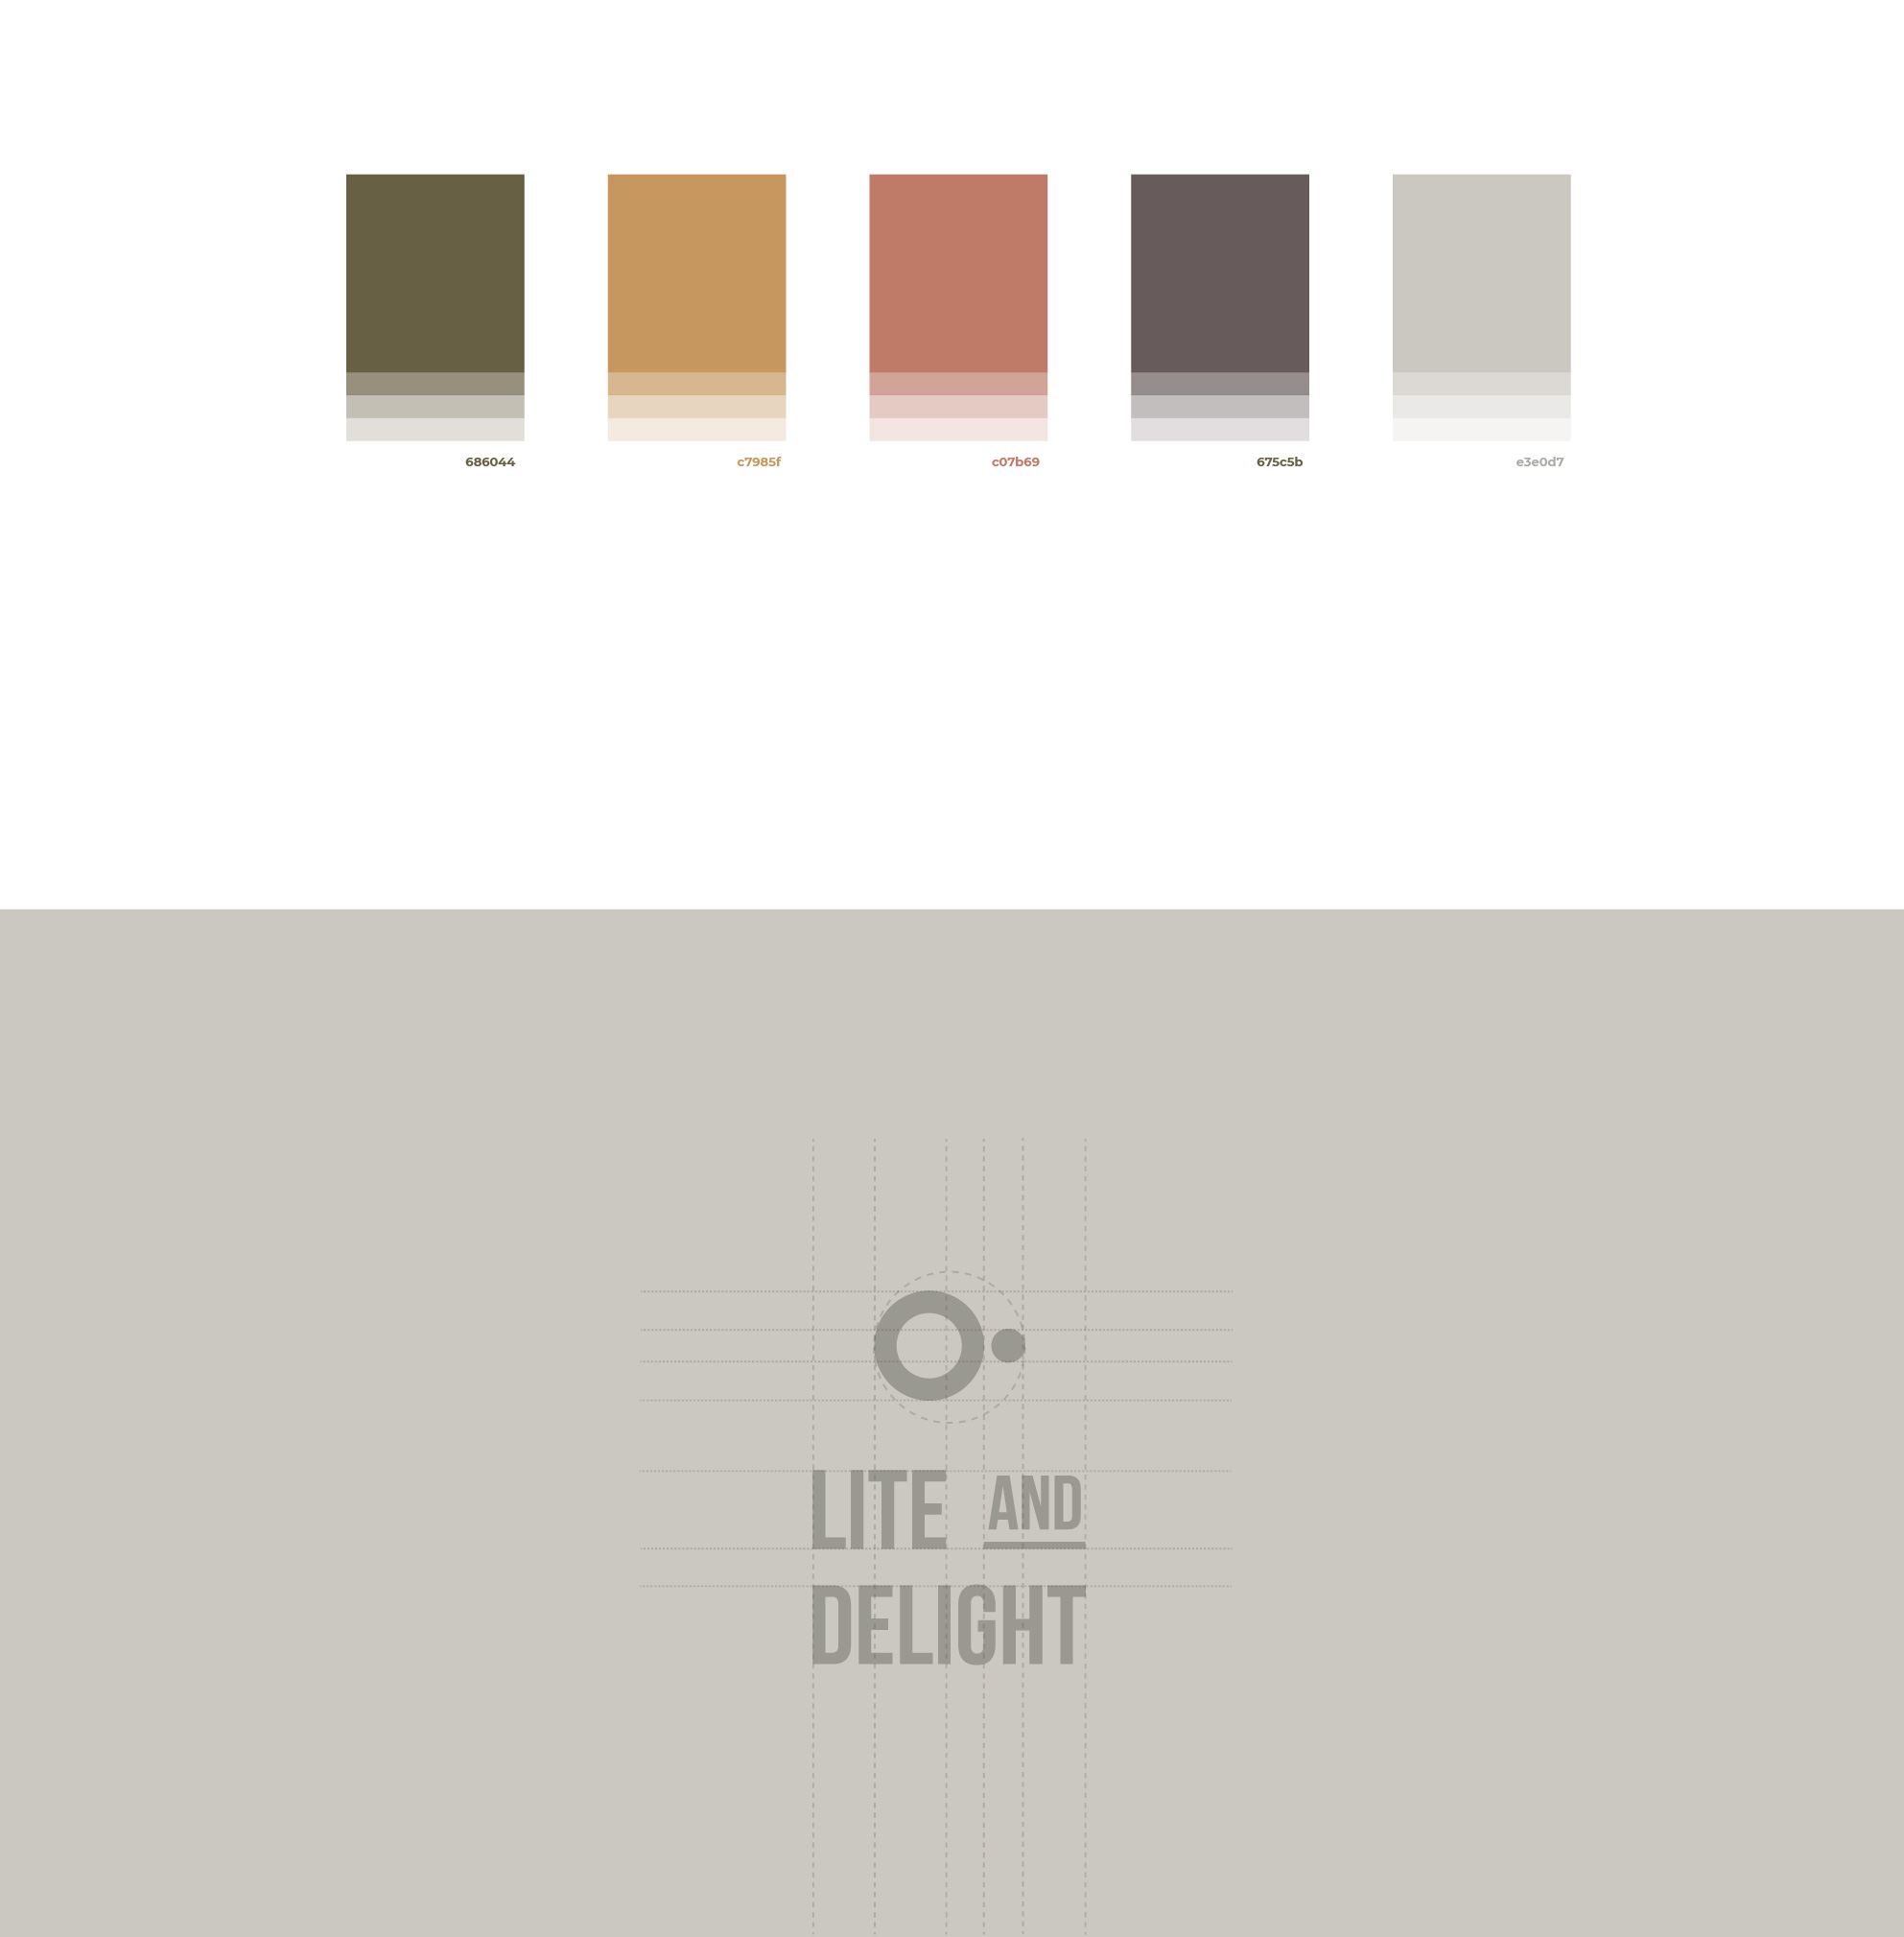 Lite And delight